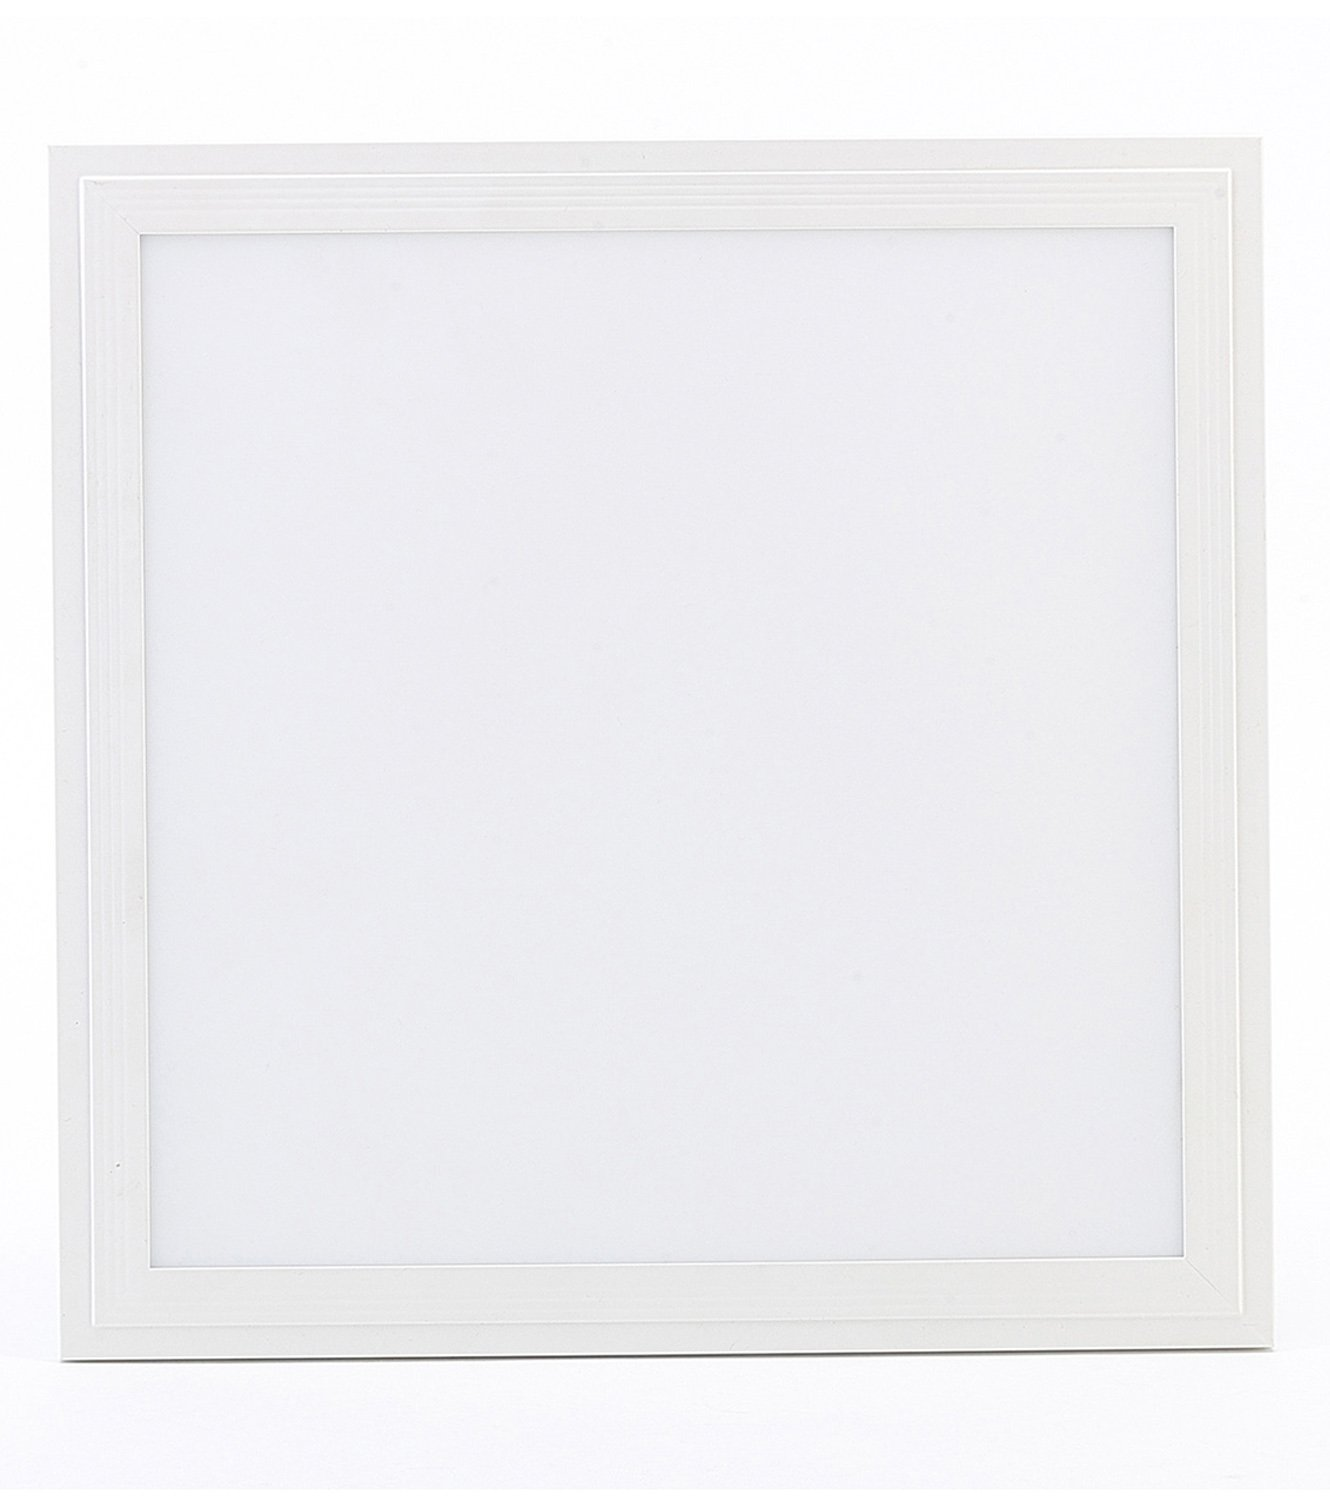 Hagolight LED Flat Square Ultra Thin Recessed Ceiling Light 12W 11.6''x11.6'' Flush Mounted Panel Lamp Light Cool White 6000-6500K With LED Driver AC85-265V